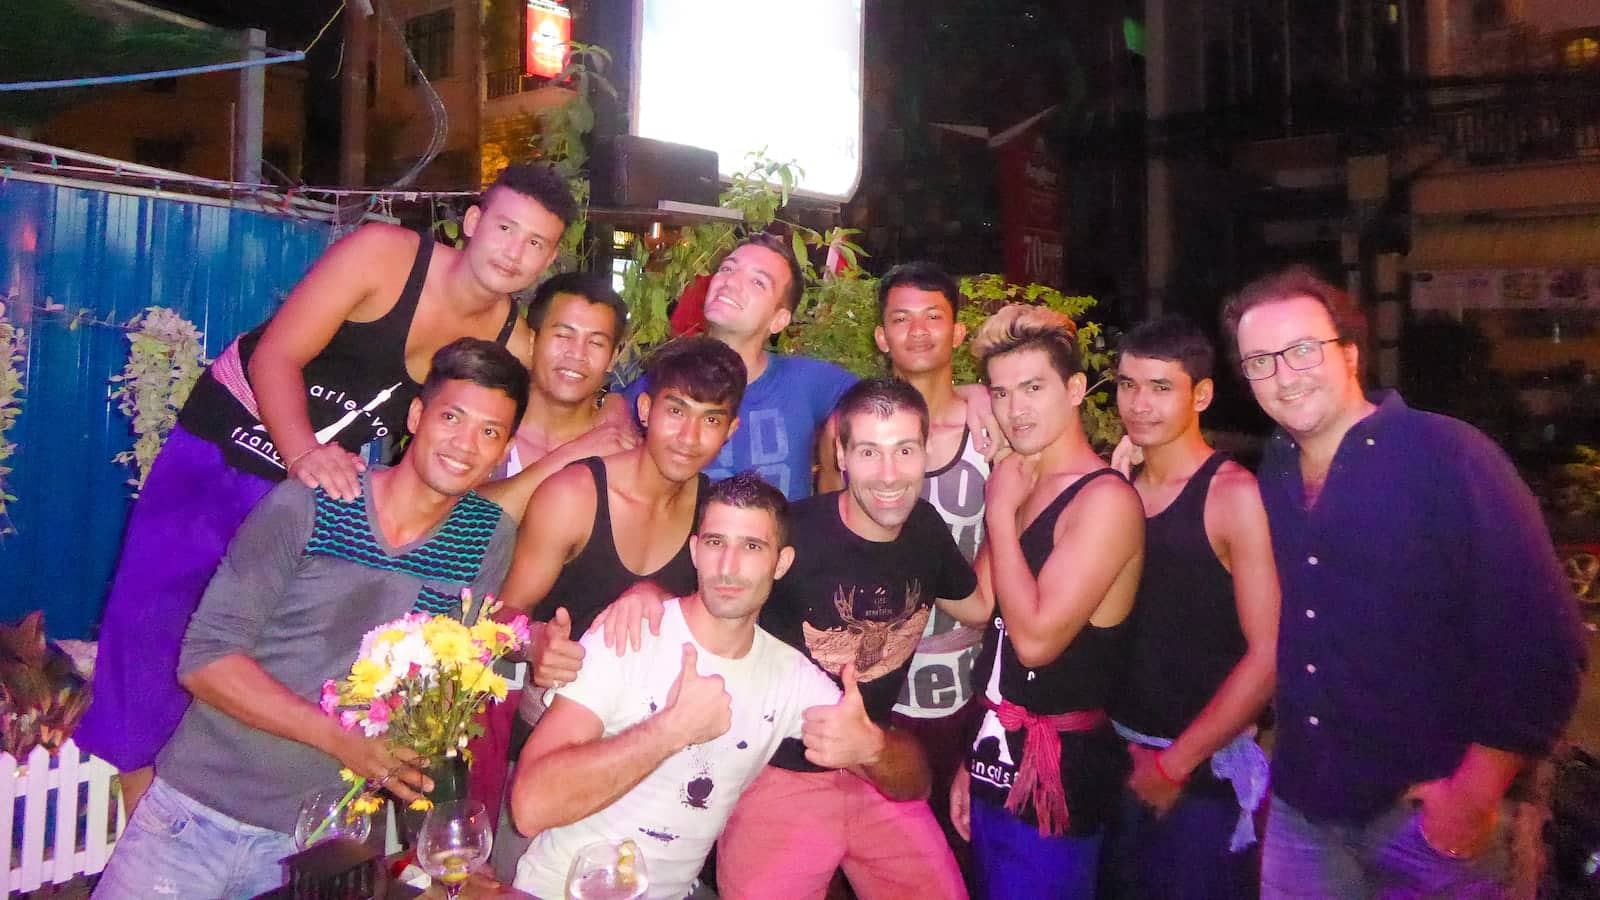 Group photo at Space gay bar in Phnom Penh